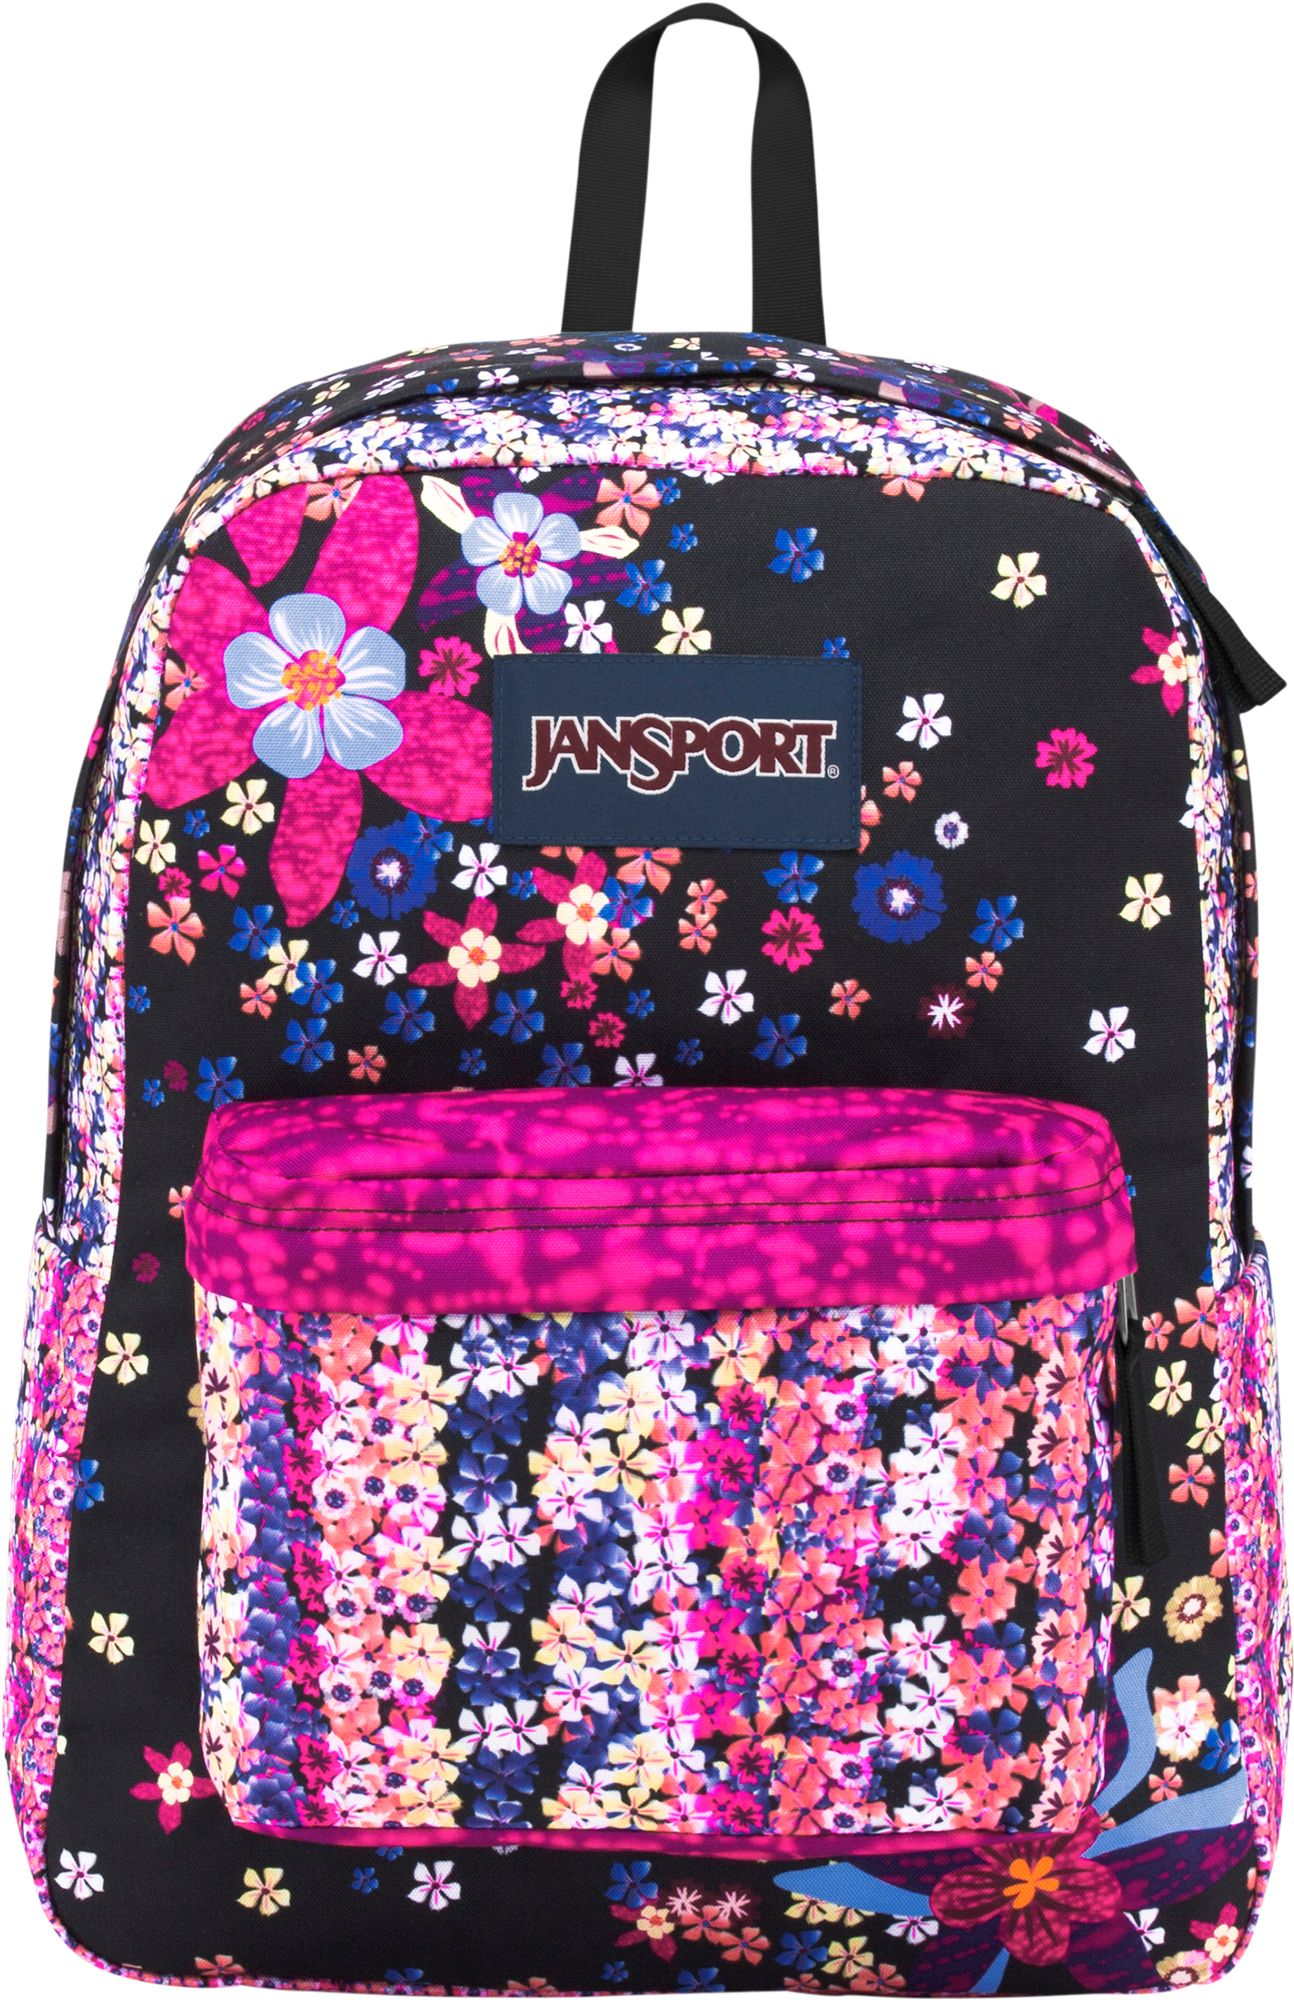 JanSport Backpacks & Bookbags | DICK'S Sporting Goods